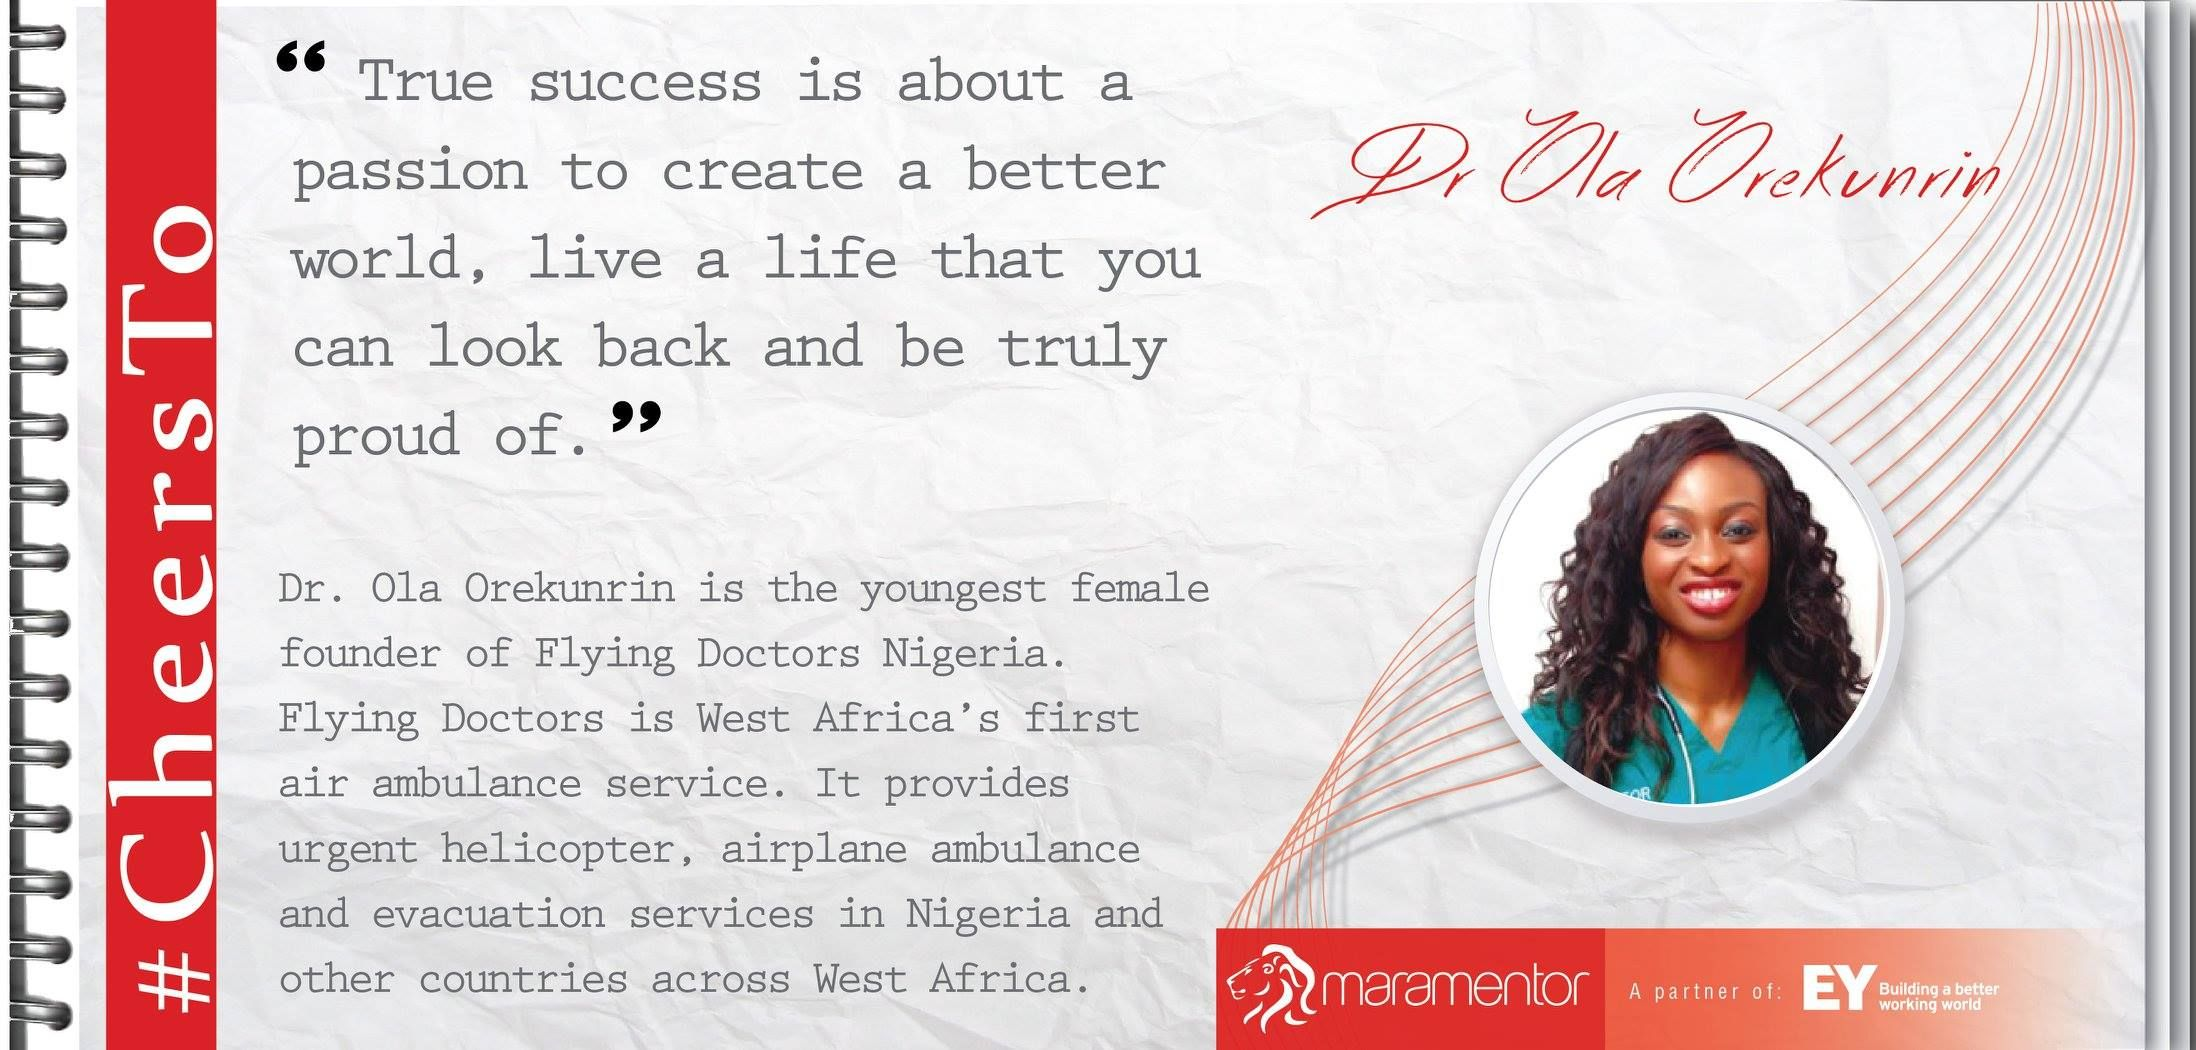 #CheersTo Dr Ola Orekunrin whose vision, determination and hard work brought a massive overhaul in the emergency care services of Nigeria.